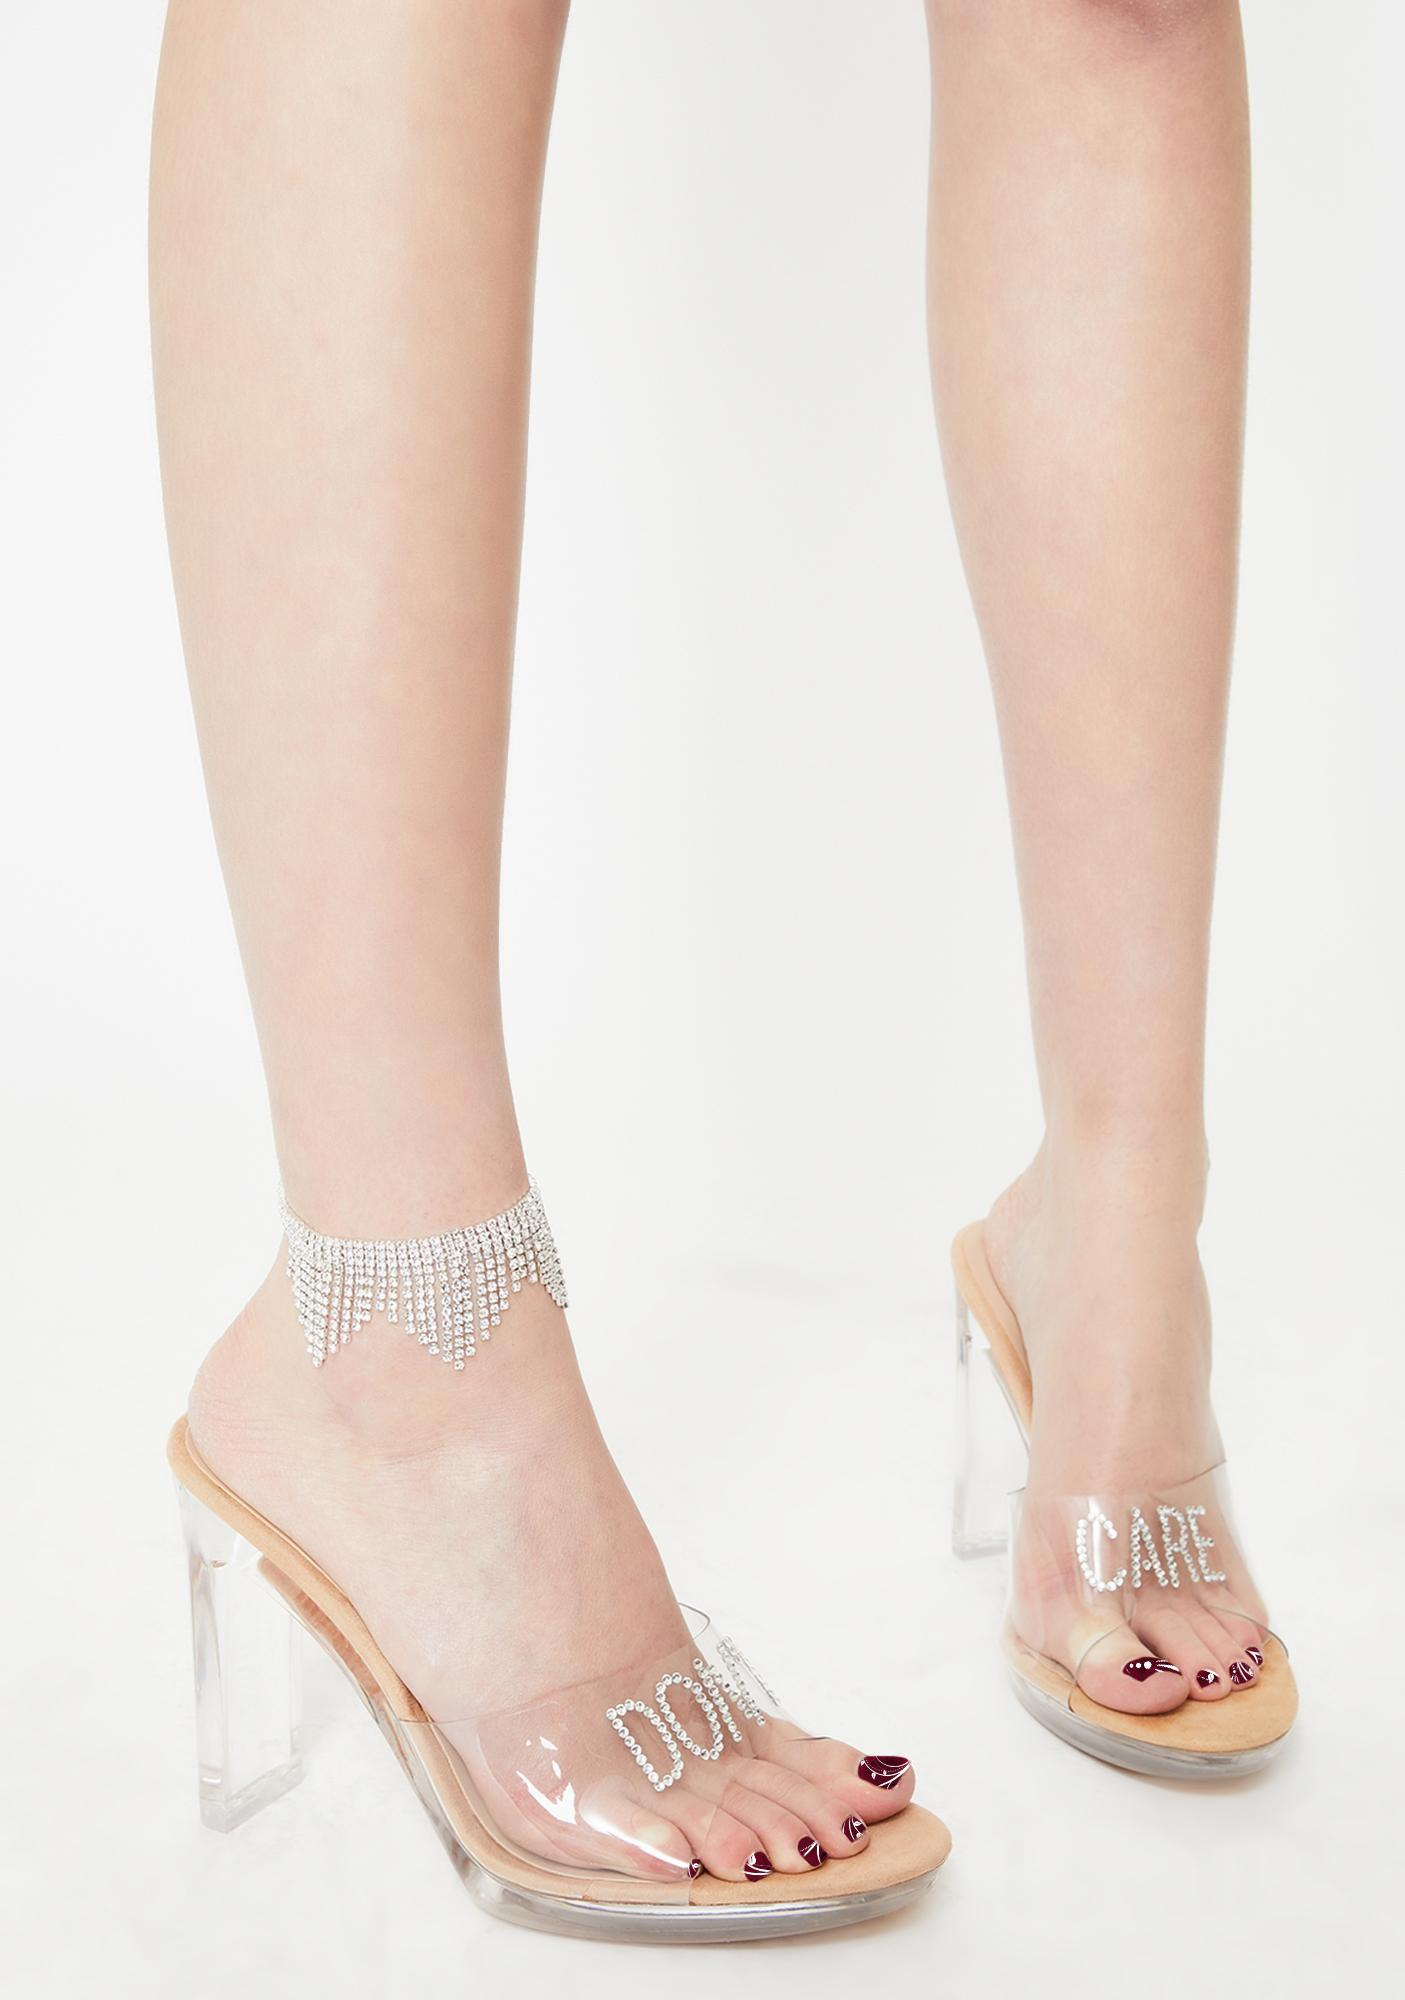 Show Me Off Rhinestone Anklet